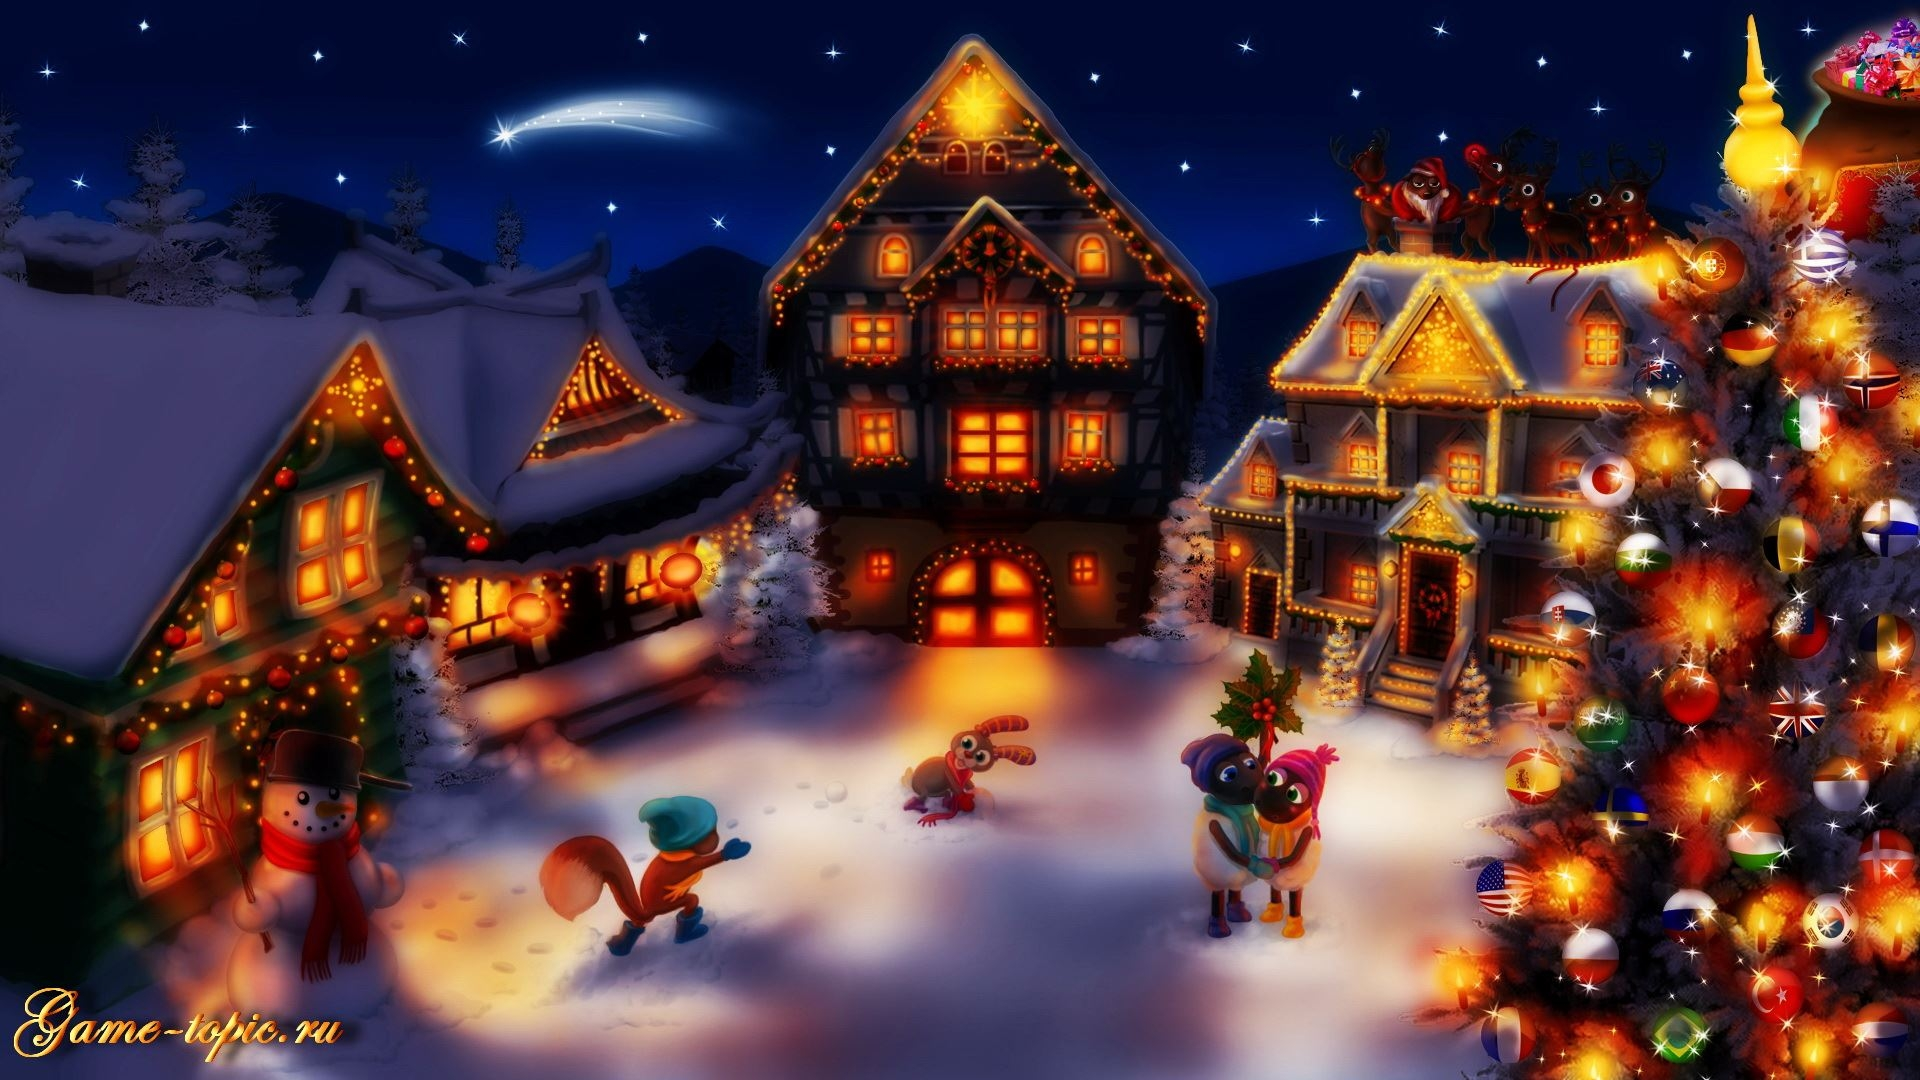 Christmas village wallpaper widescreen